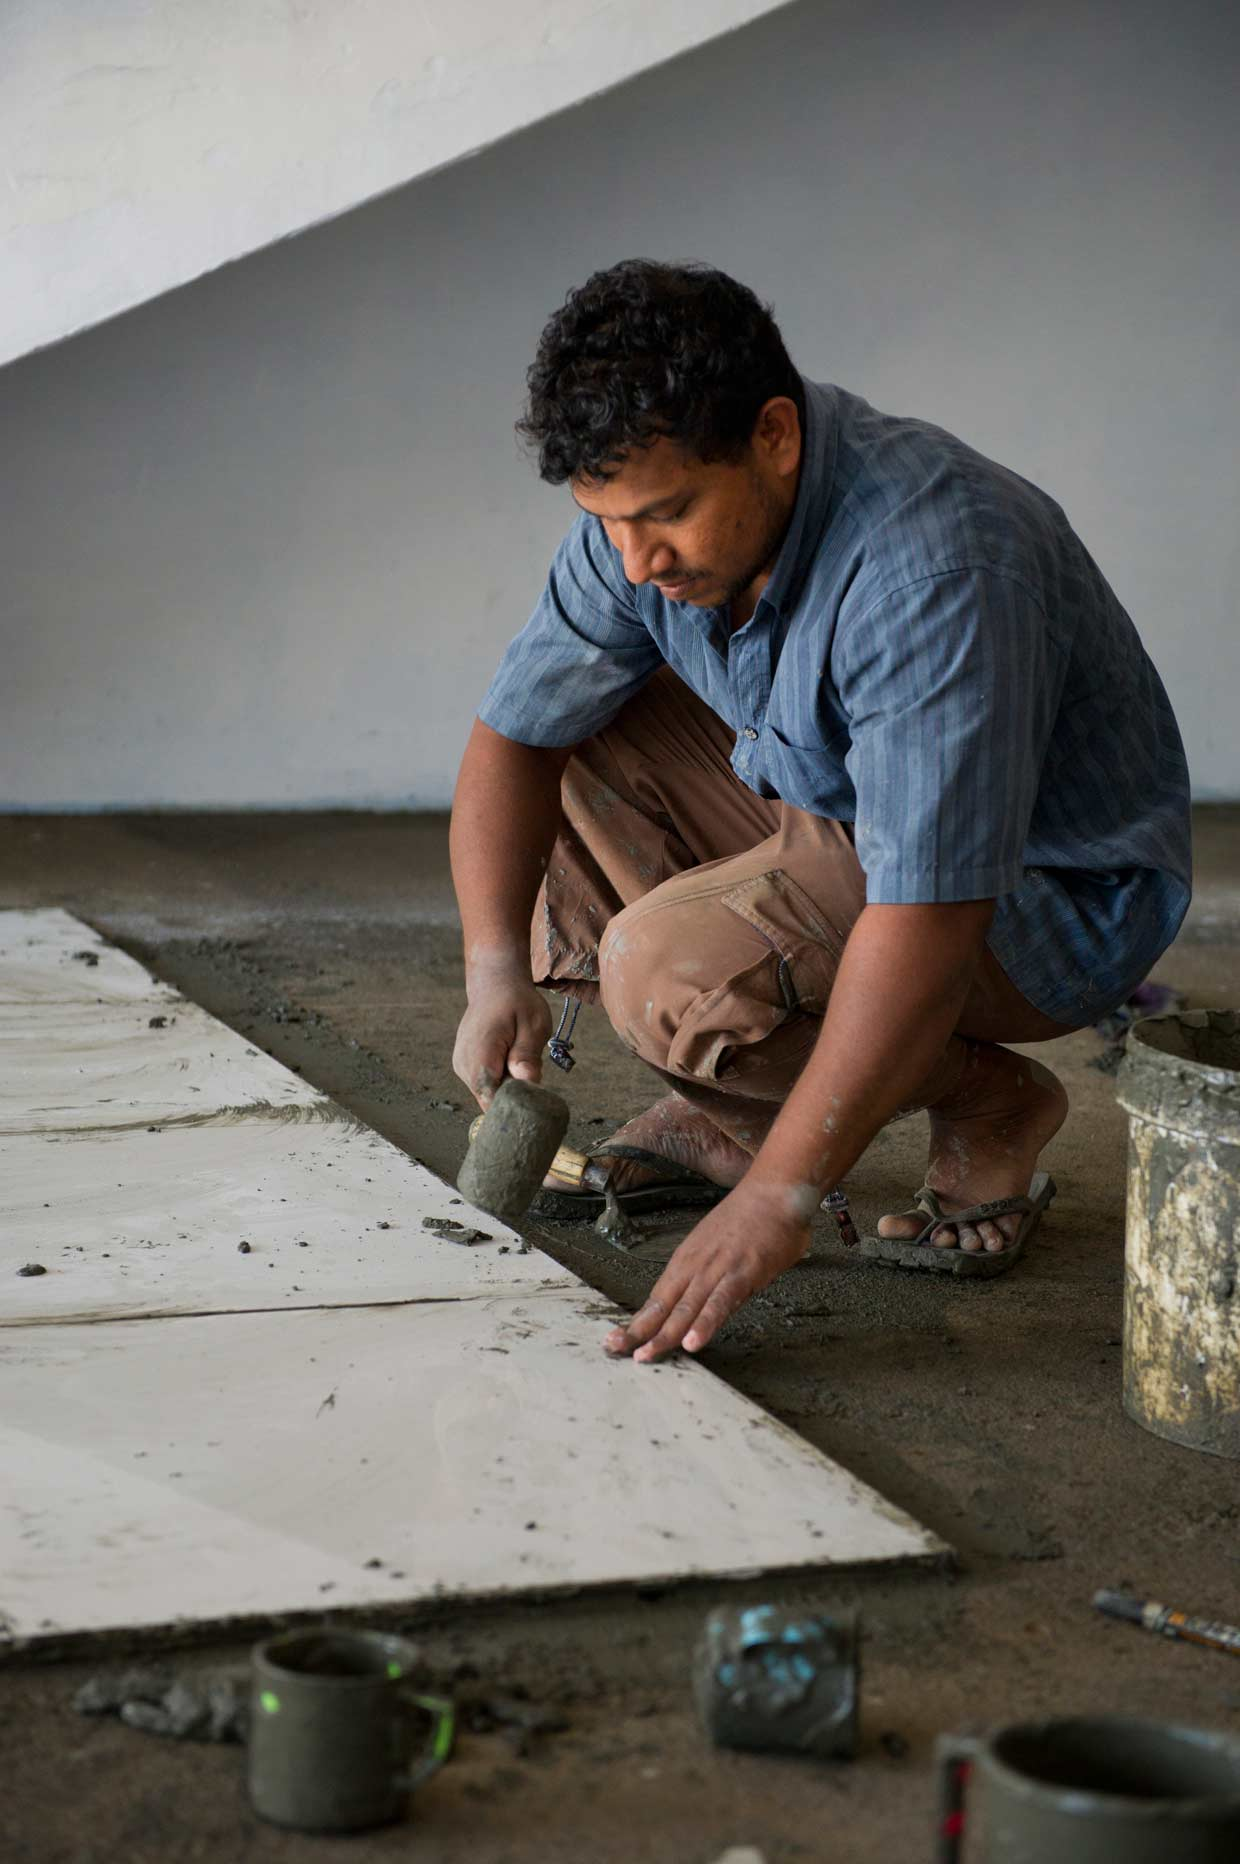 Chandana, a tile layer and recipient of the Small Entrepreneur Programme of the MJF Charitable Foundation busy at his vocation. He is one of the 750 recipients of this unique scheme that supports individuals with promise.